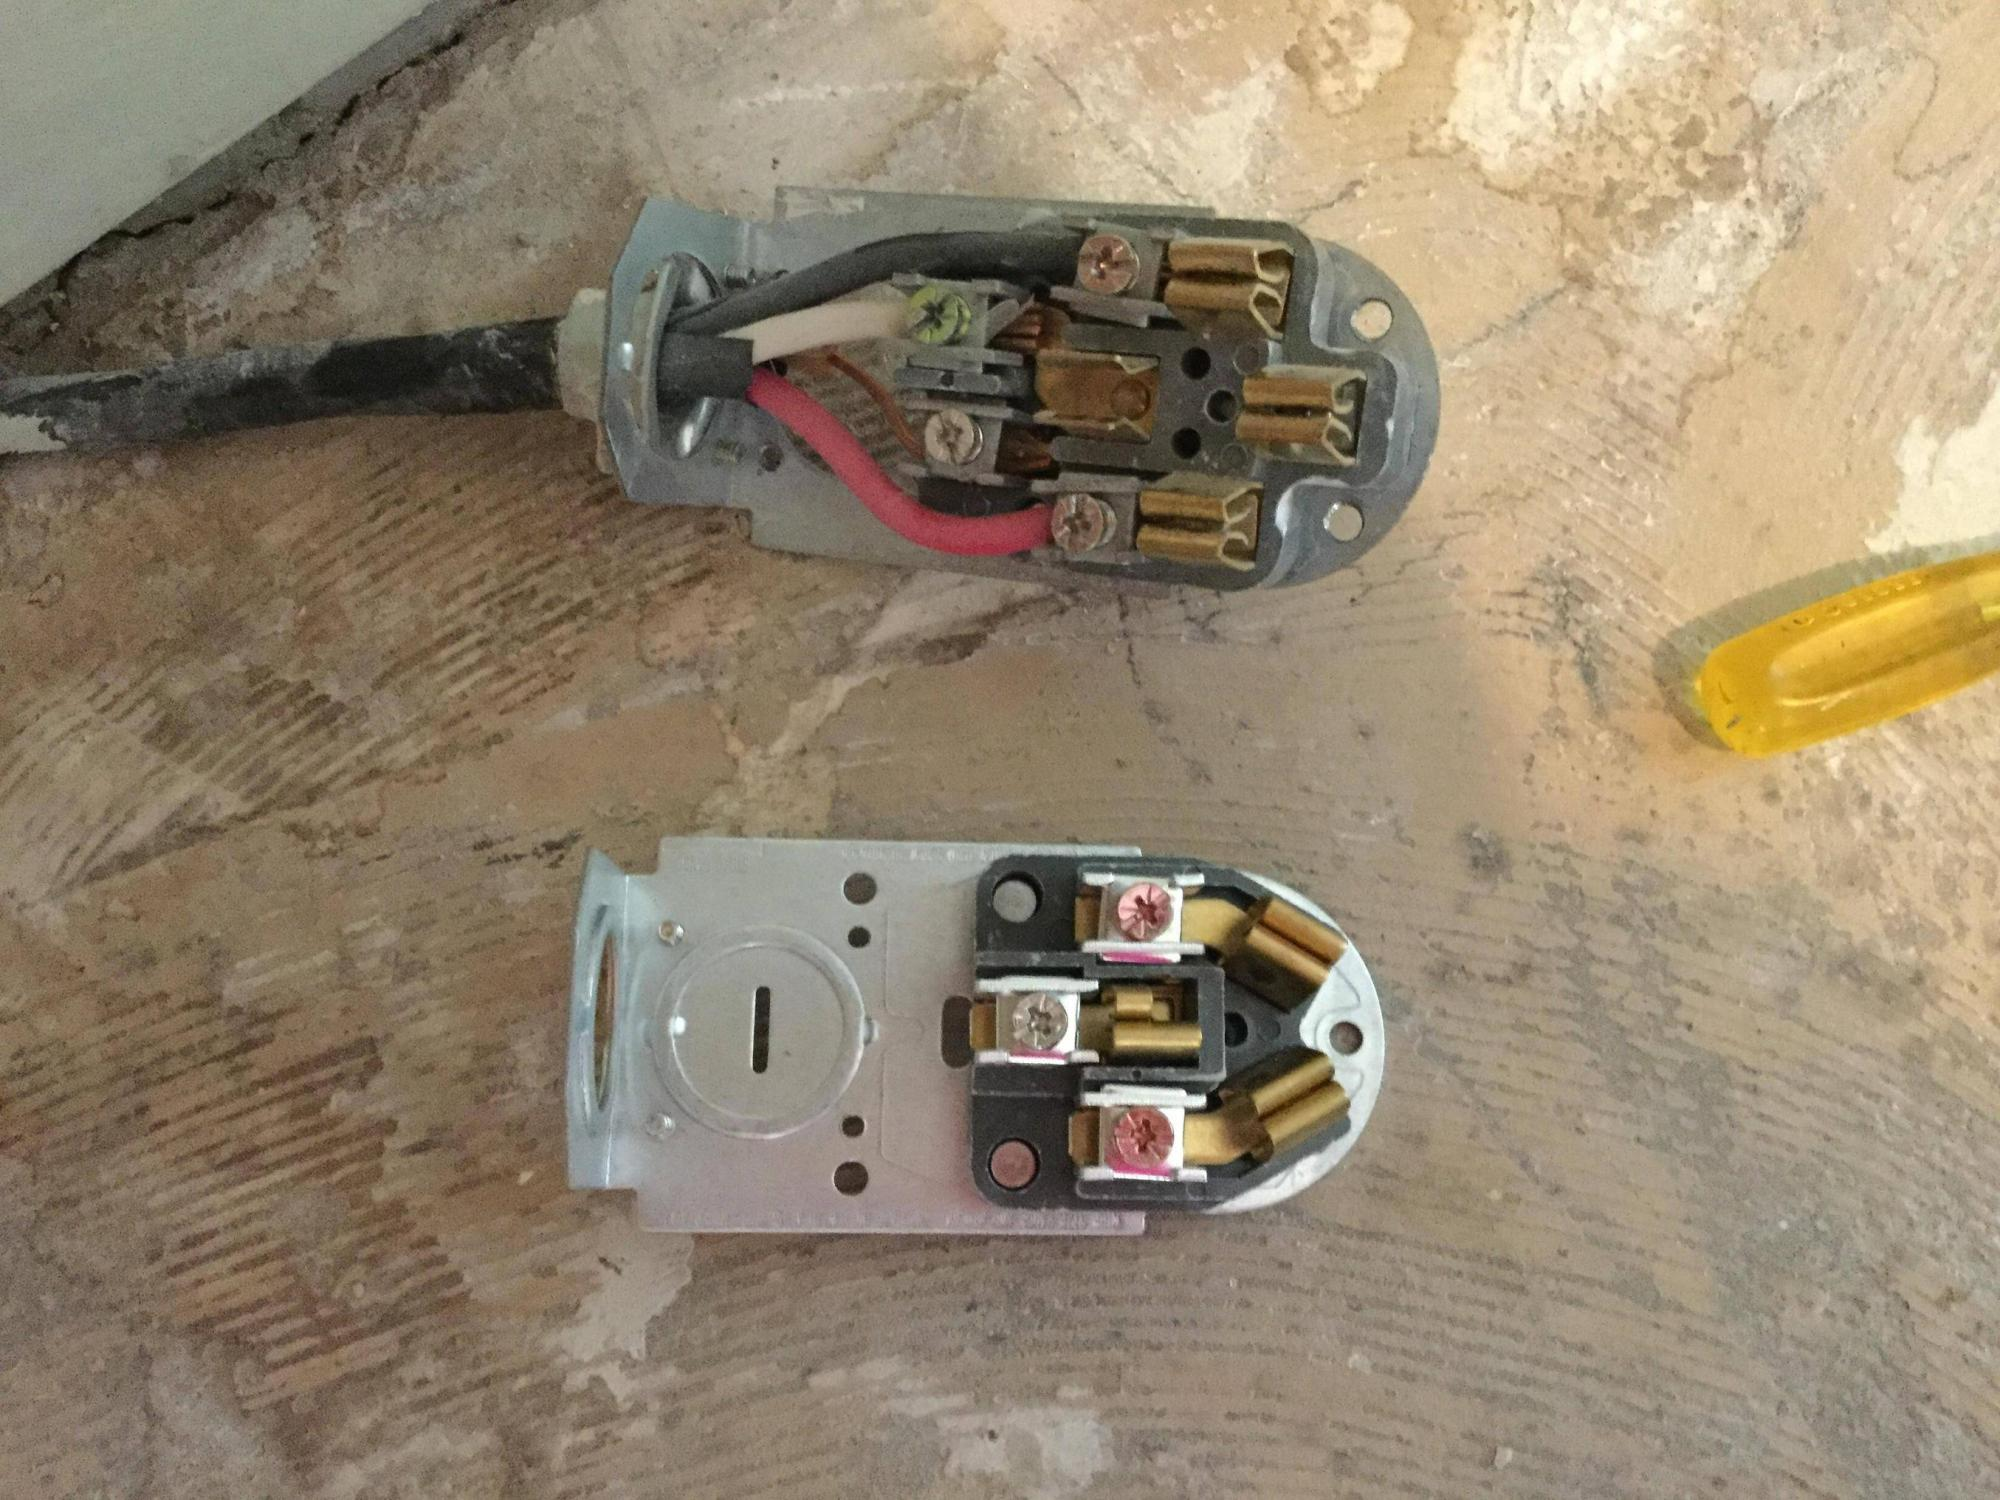 hight resolution of changing a 4 wire electrical cord to a 3 wire electrical cord for a 50 amp plug wiring diagram electric range outlet wiring